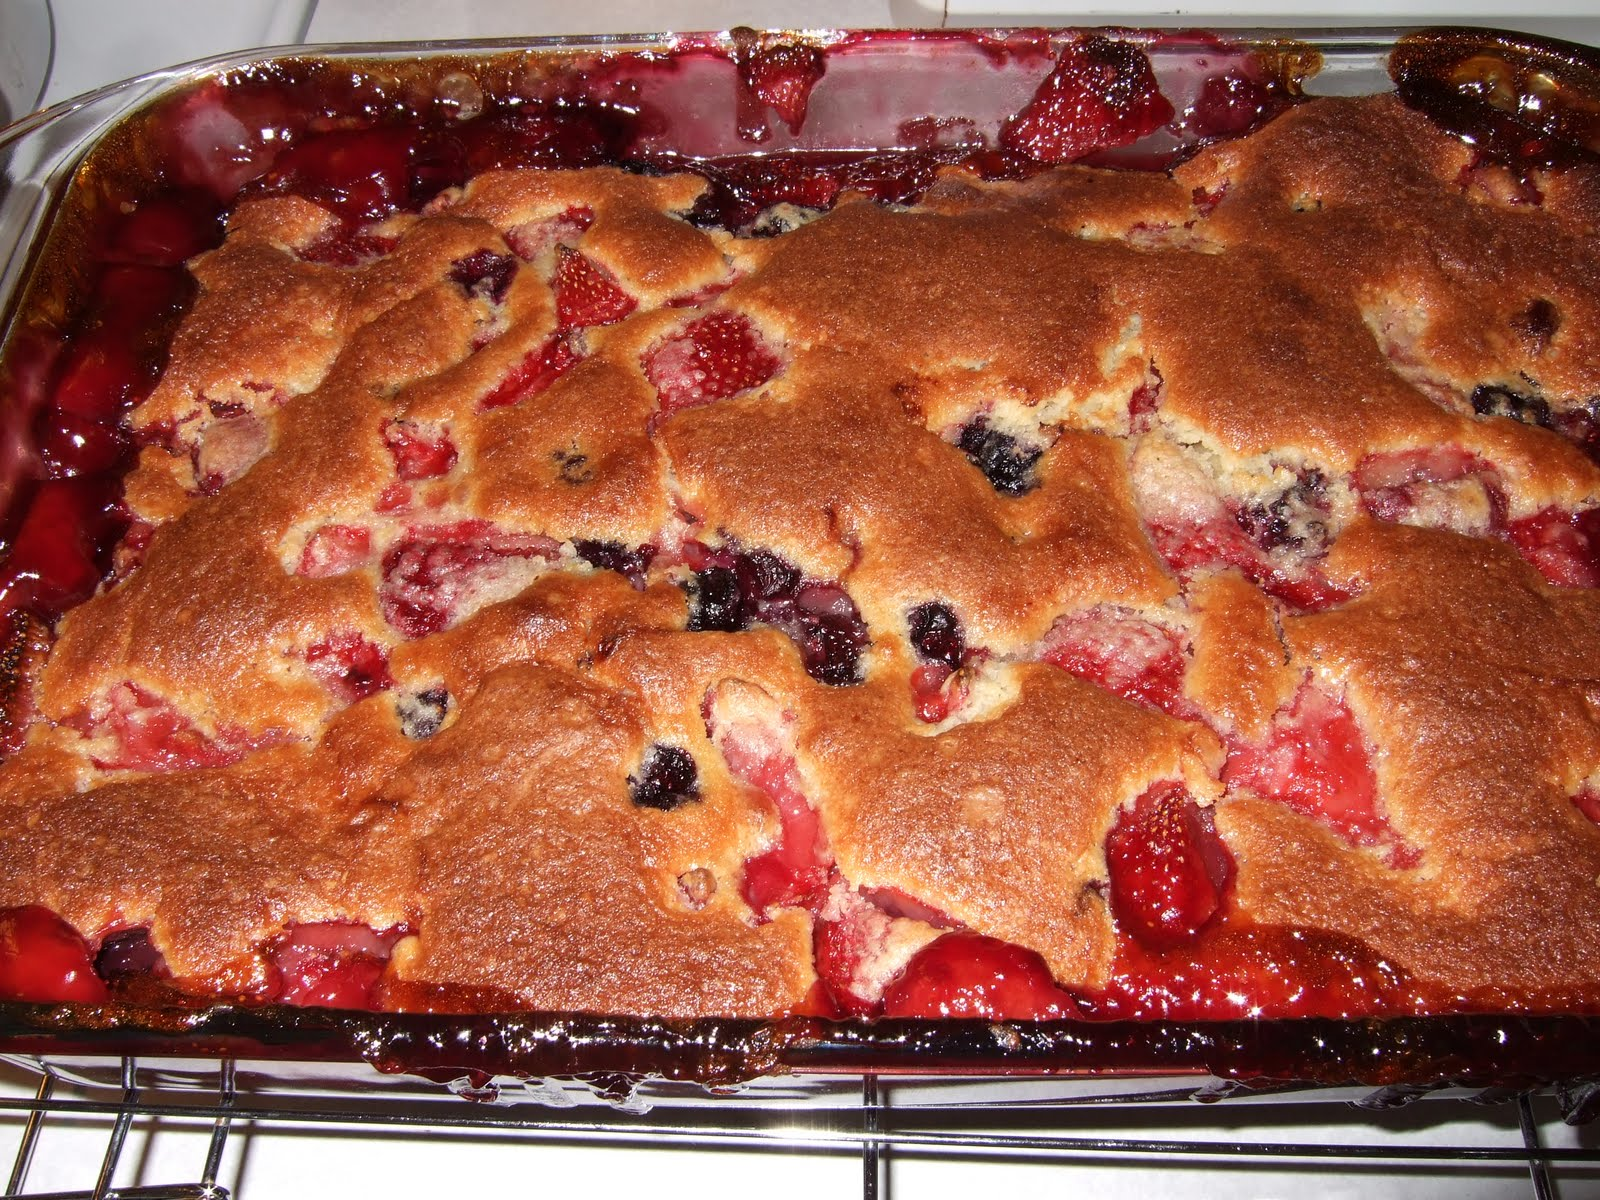 Her Yellow Apron: Mixed-Berry Spoon Cake